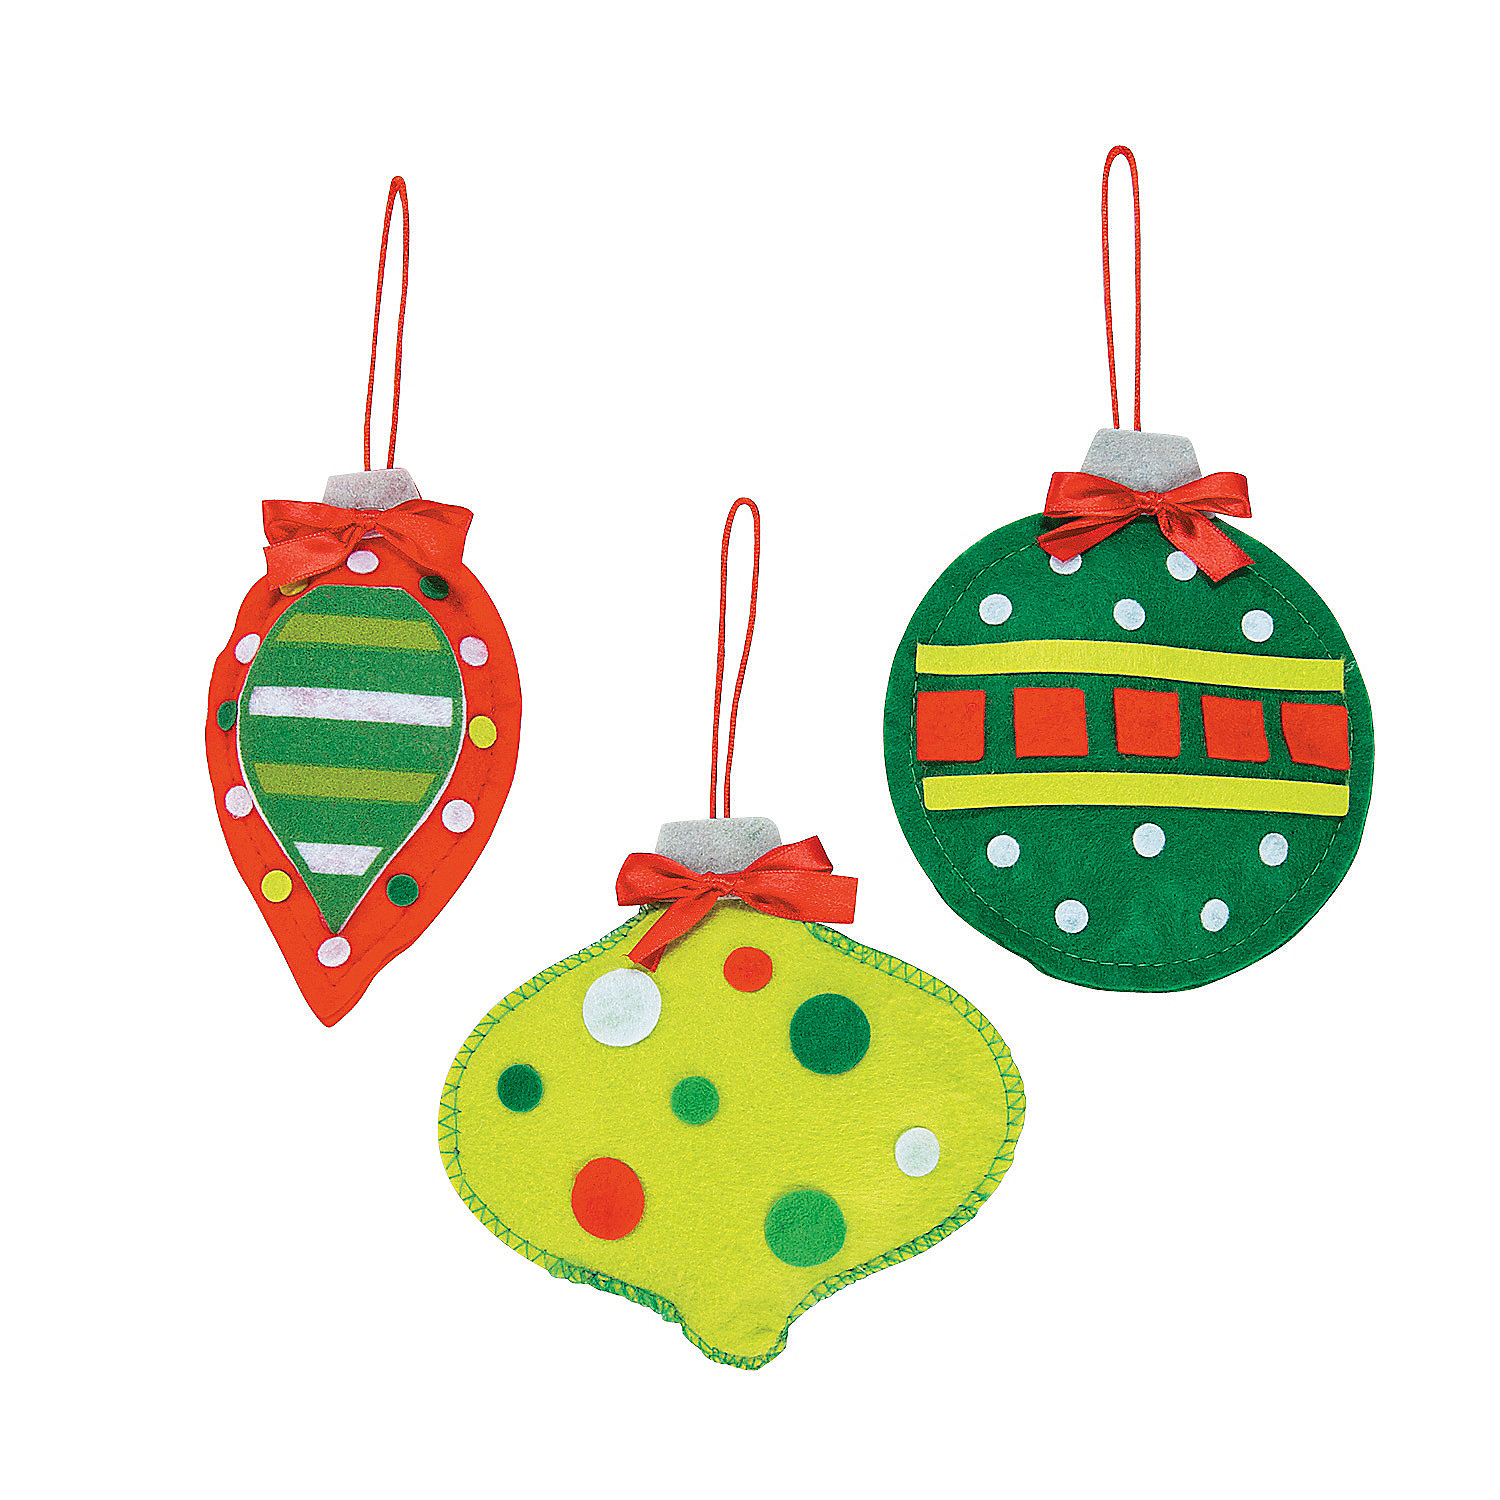 Soft christmas ornament craft kit ornament crafts adult for Craft kits for adults to make